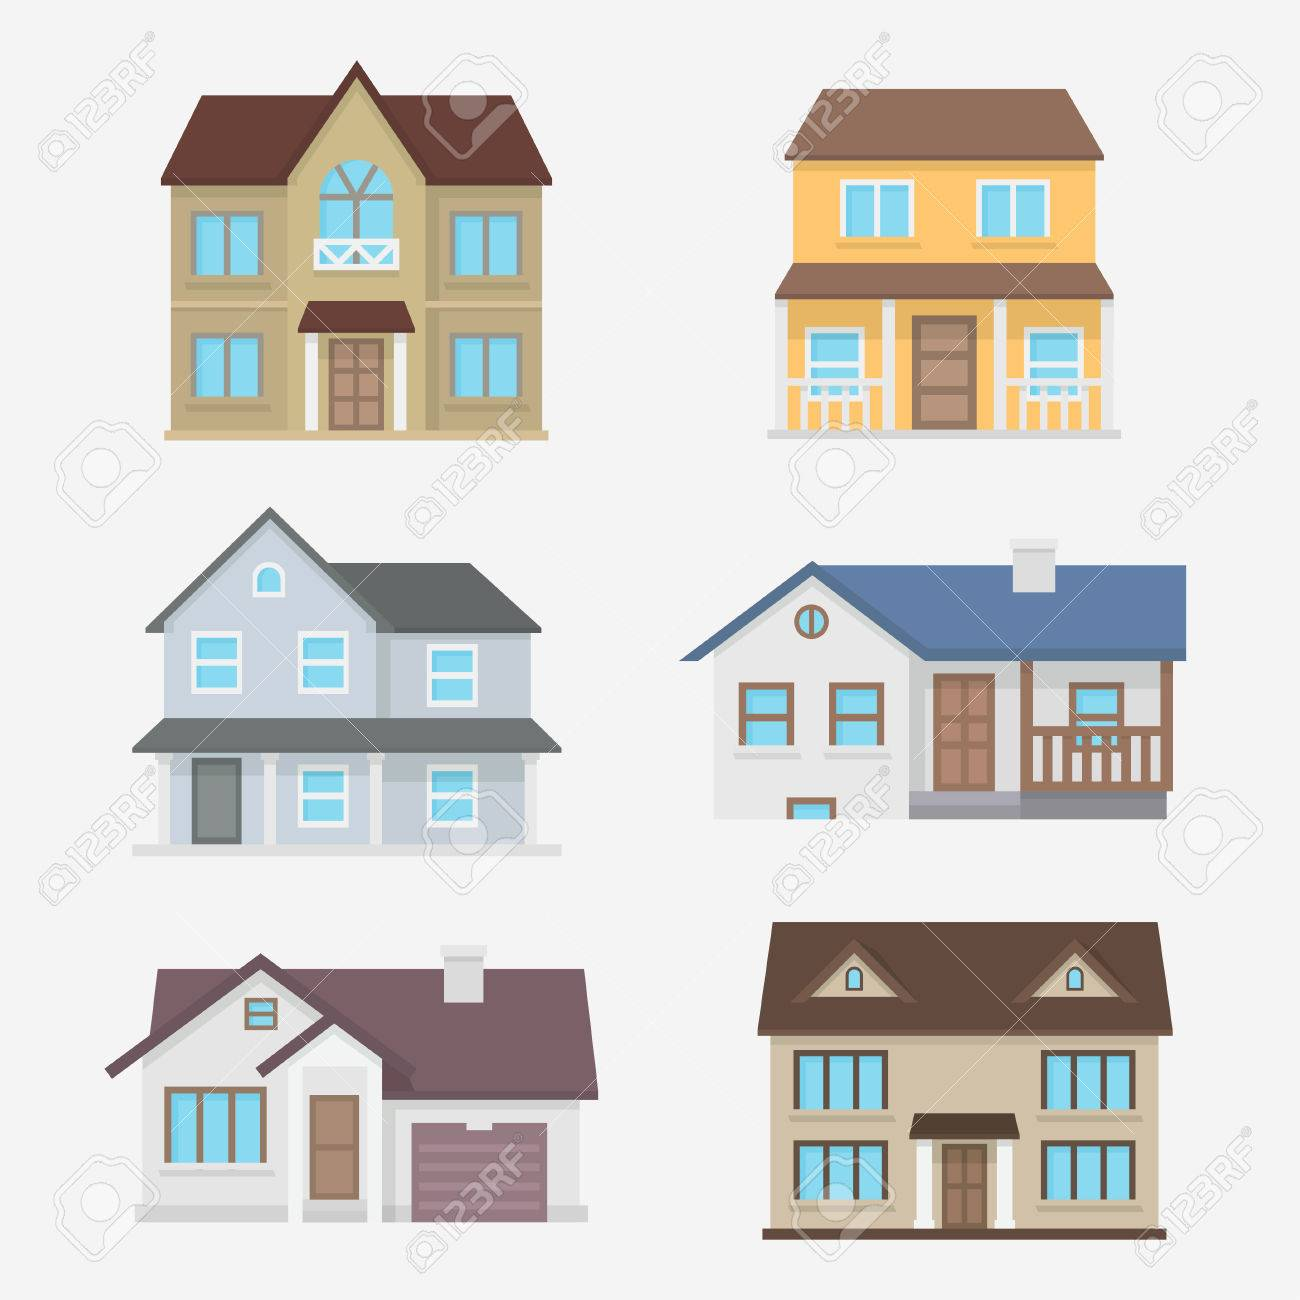 House Vector Illustration. Home Exterior Set. House Icon In Flat ...